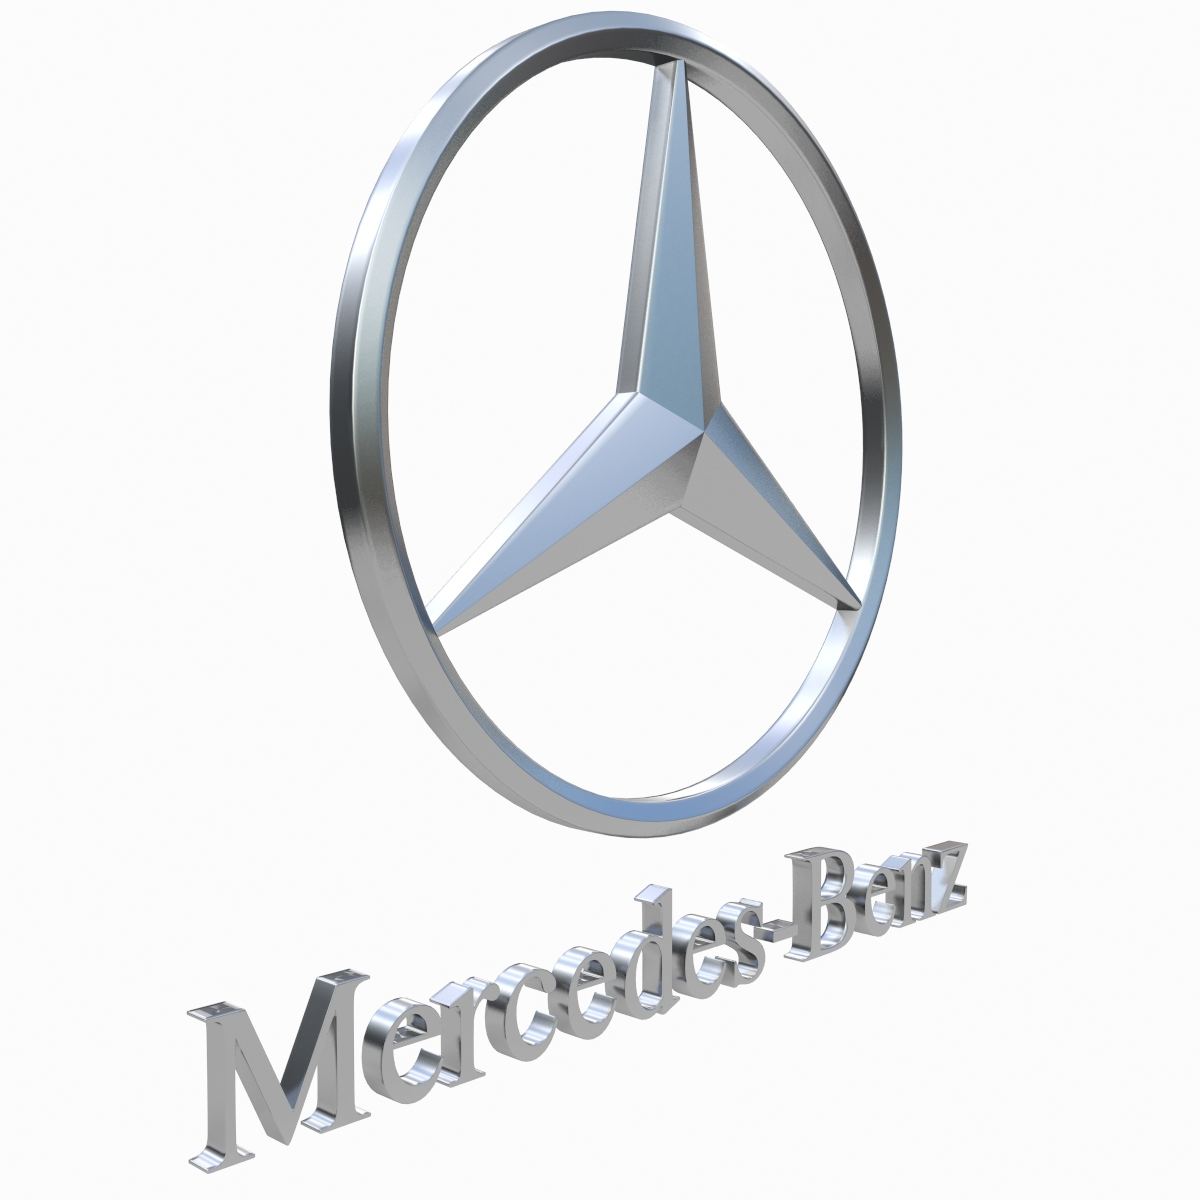 Mercedes benz logo 3d logo brands for free hd 3d mercedes benz logo 3d voltagebd Image collections